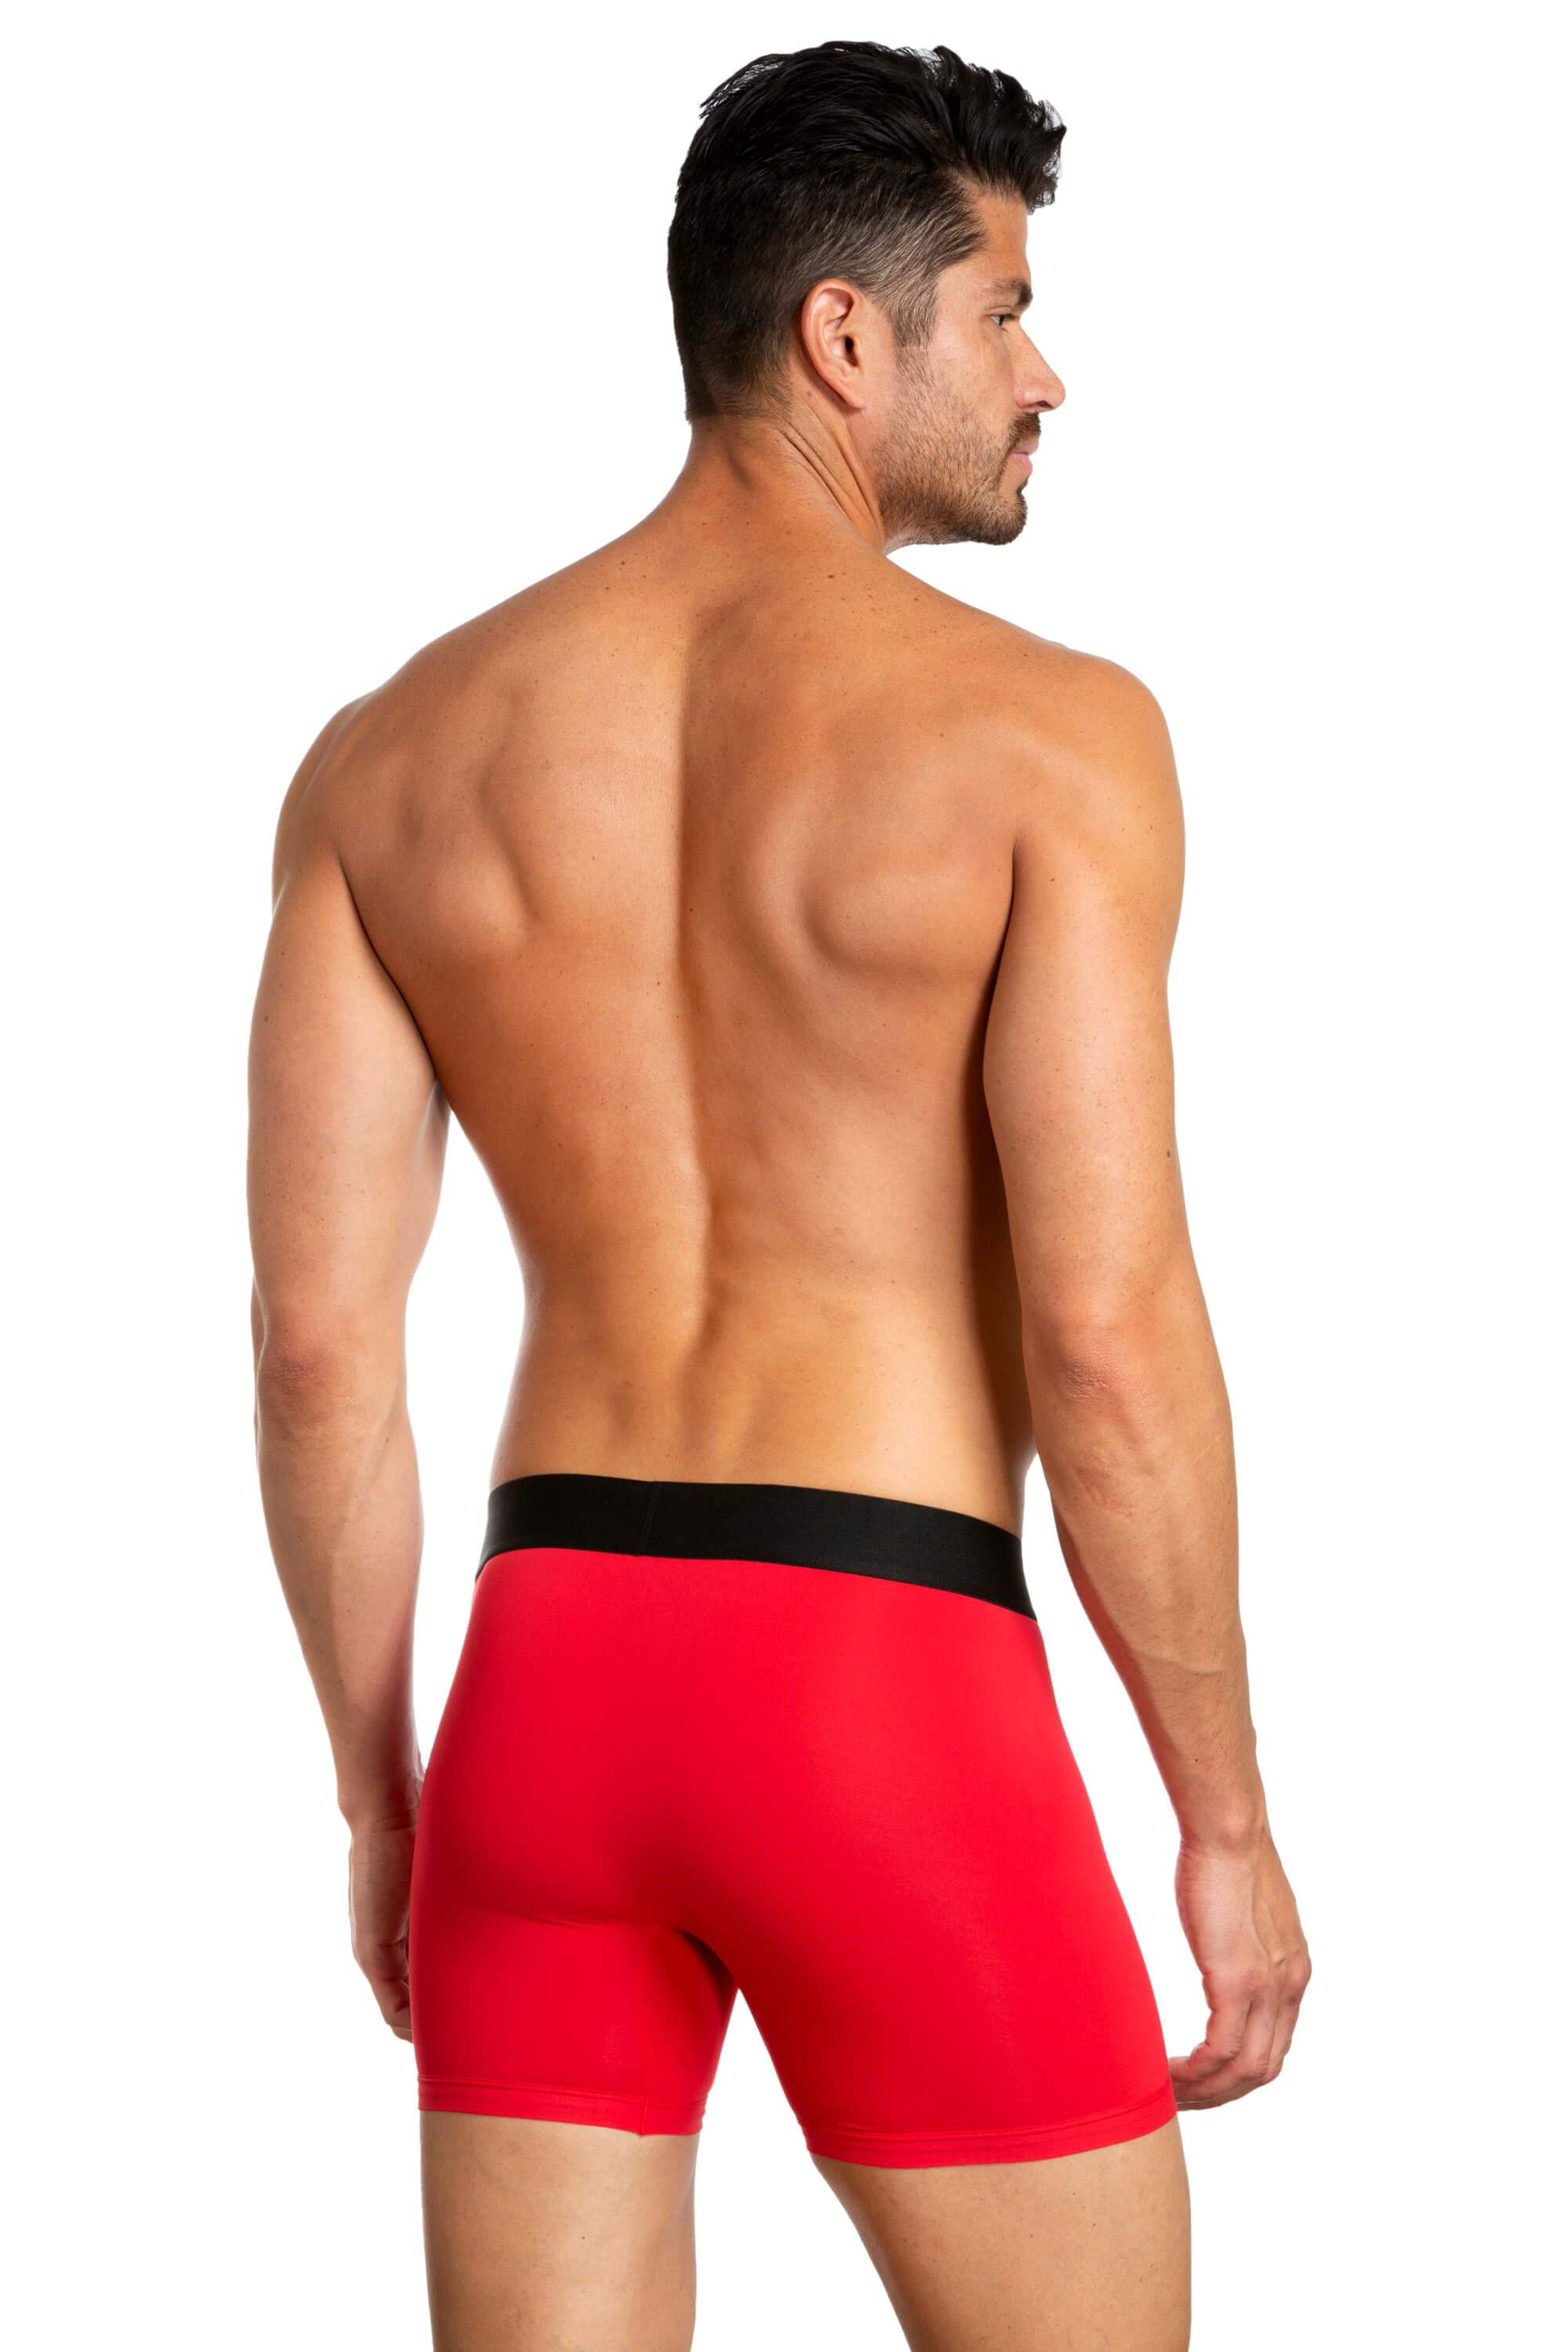 Pack of 3 Boxer Briefs for Men JLBX1-237 - Red and black back - Jared Lang